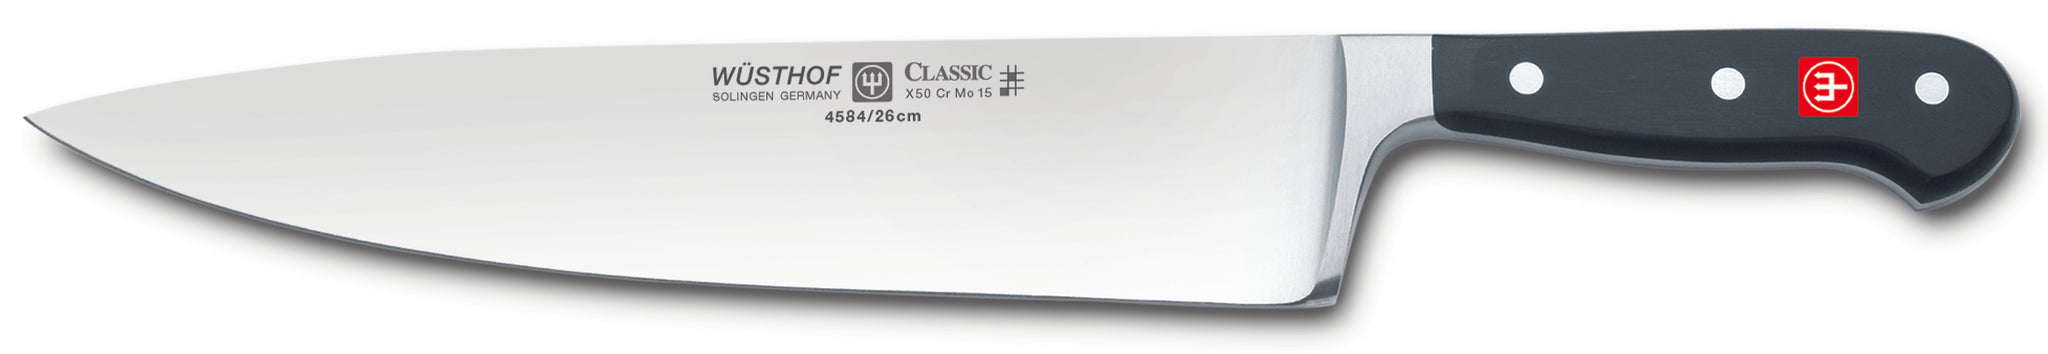 4584-7/26 wusthof classic wide chefs knife. 10 inches. riveted handle.